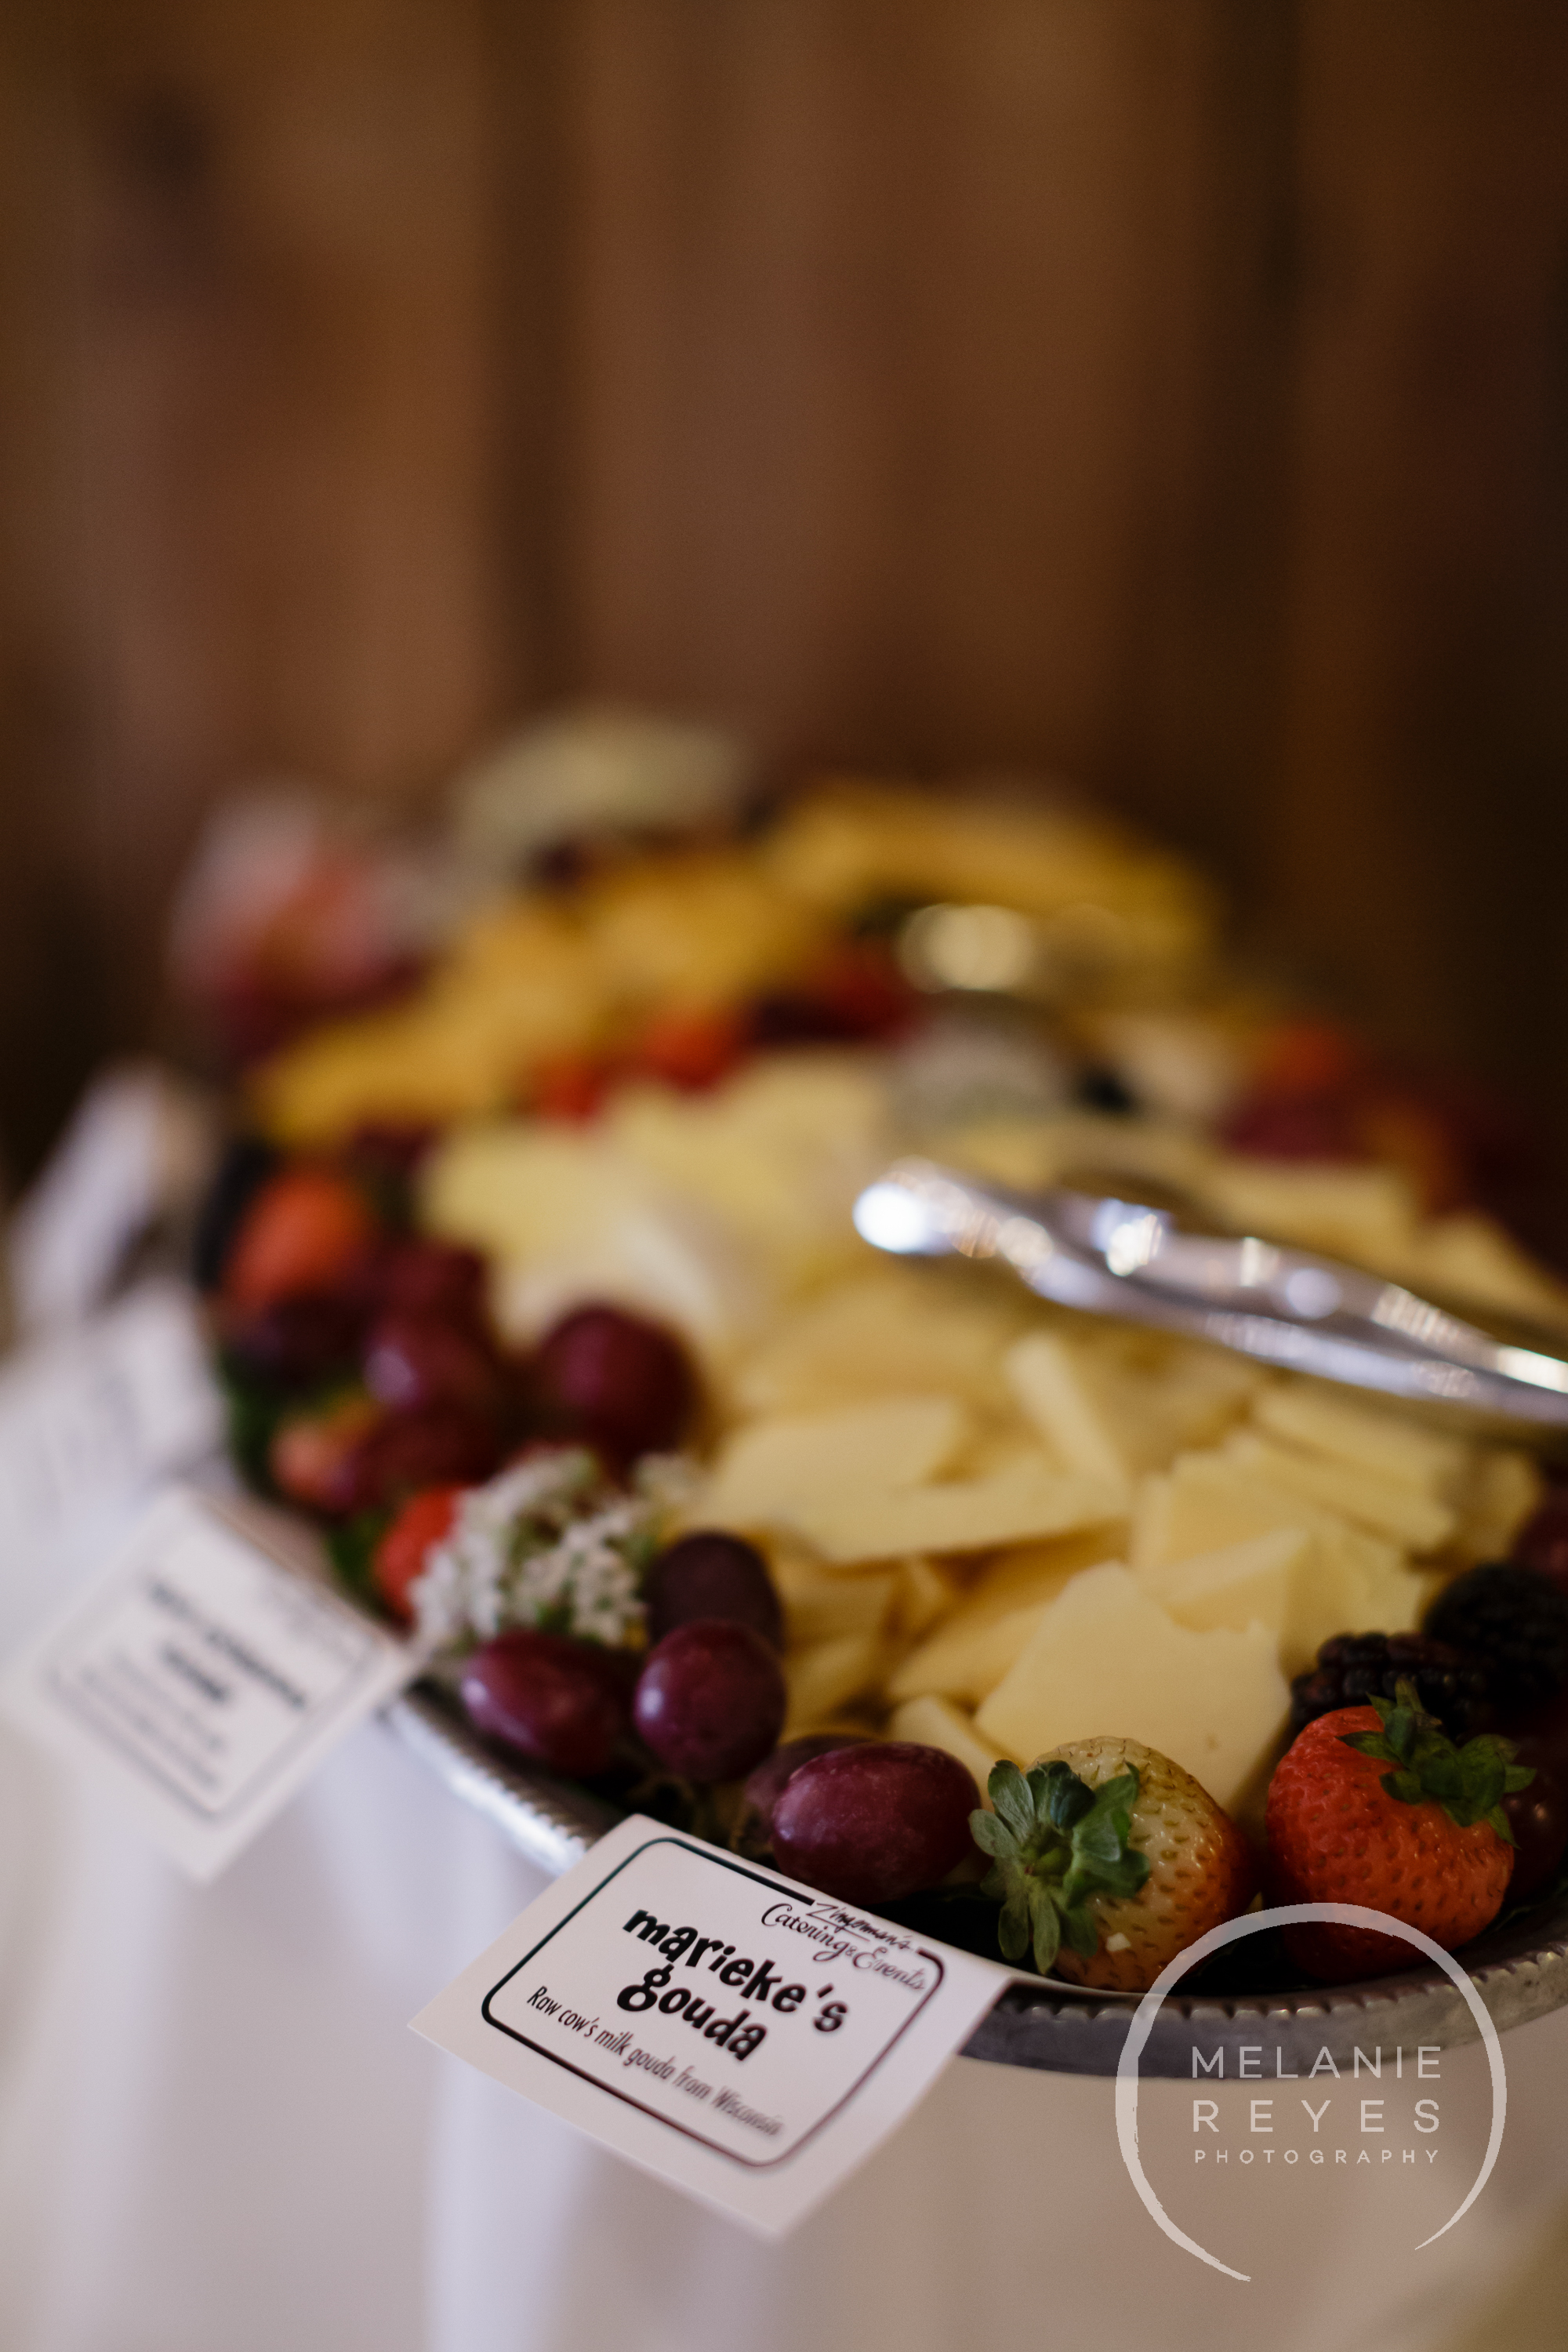 zingermans_cornman_farms_wedding_melanie_reyes_photography_023.JPG